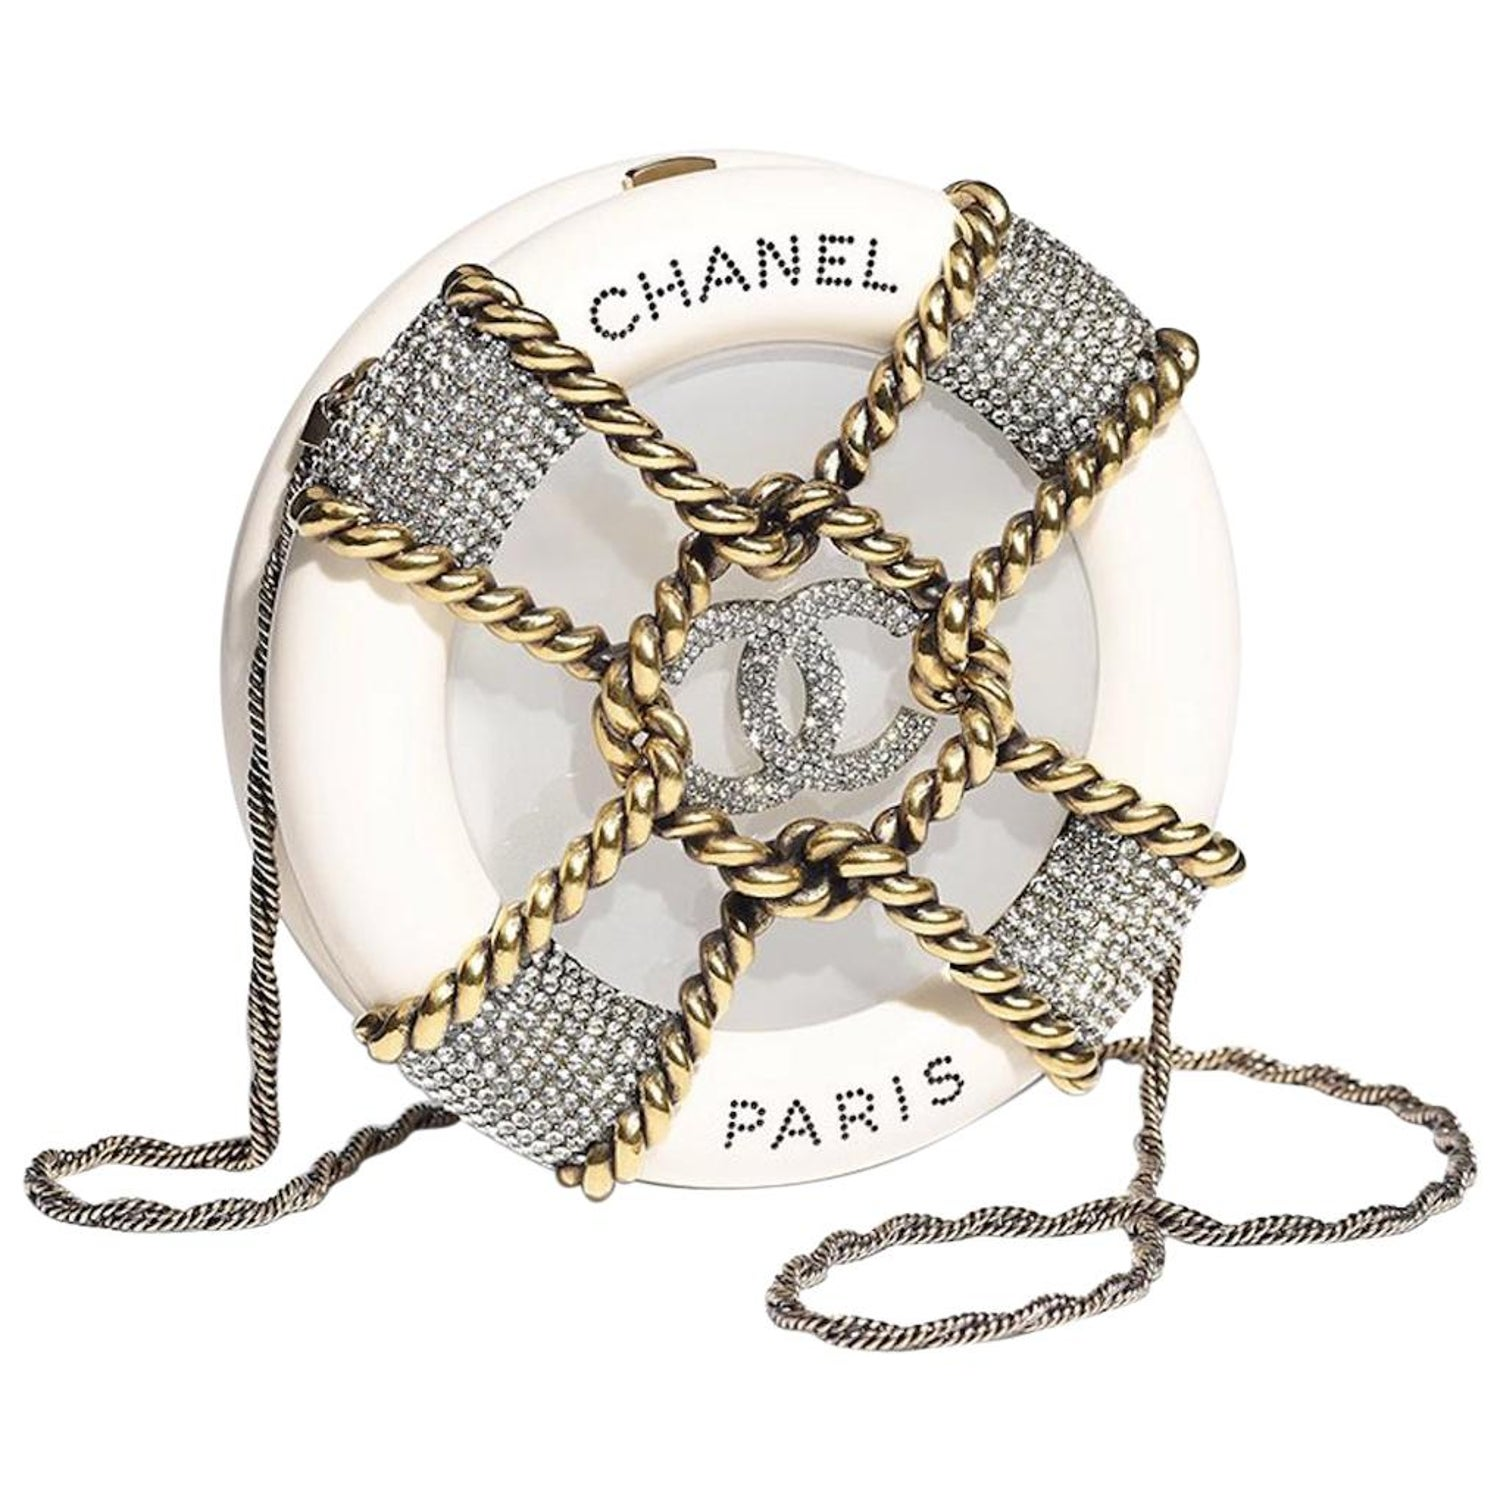 96936aadb006 Chanel NEW Ivory Crystal Round CC Mini 2 in 1 Clutch Evening Shoulder Bag  in Box For Sale at 1stdibs